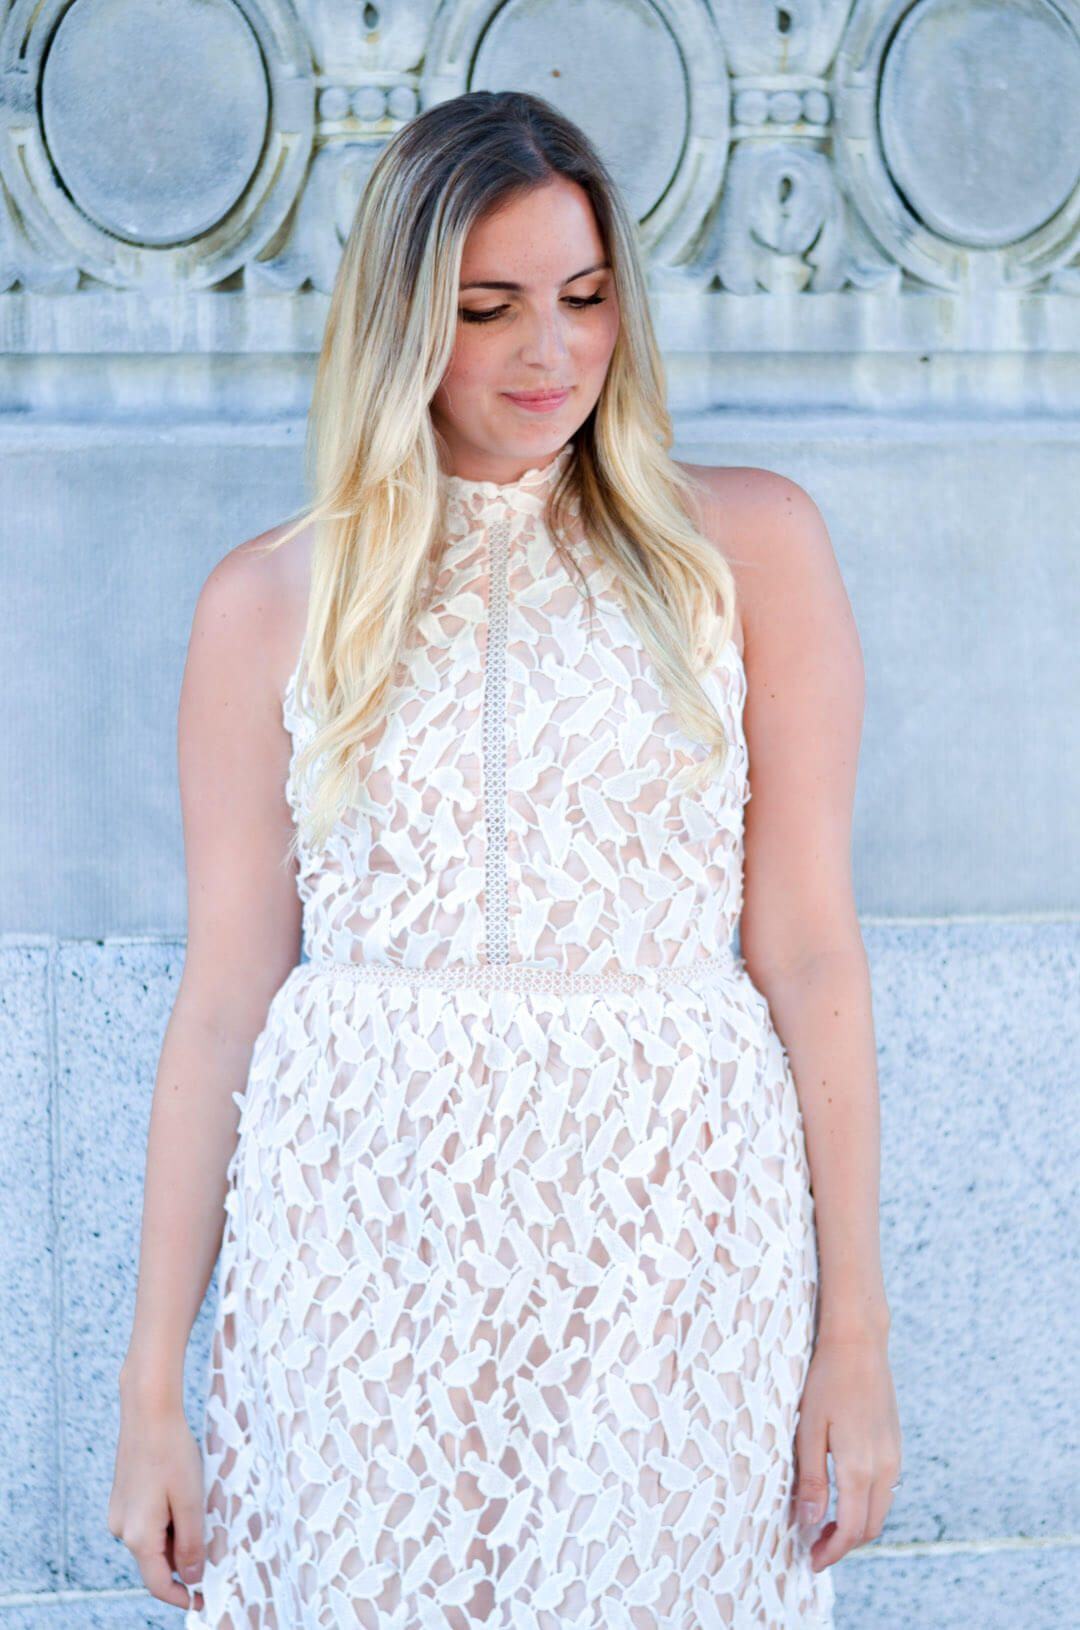 Bridal shower and rehearsal dinner outfit ideas for the